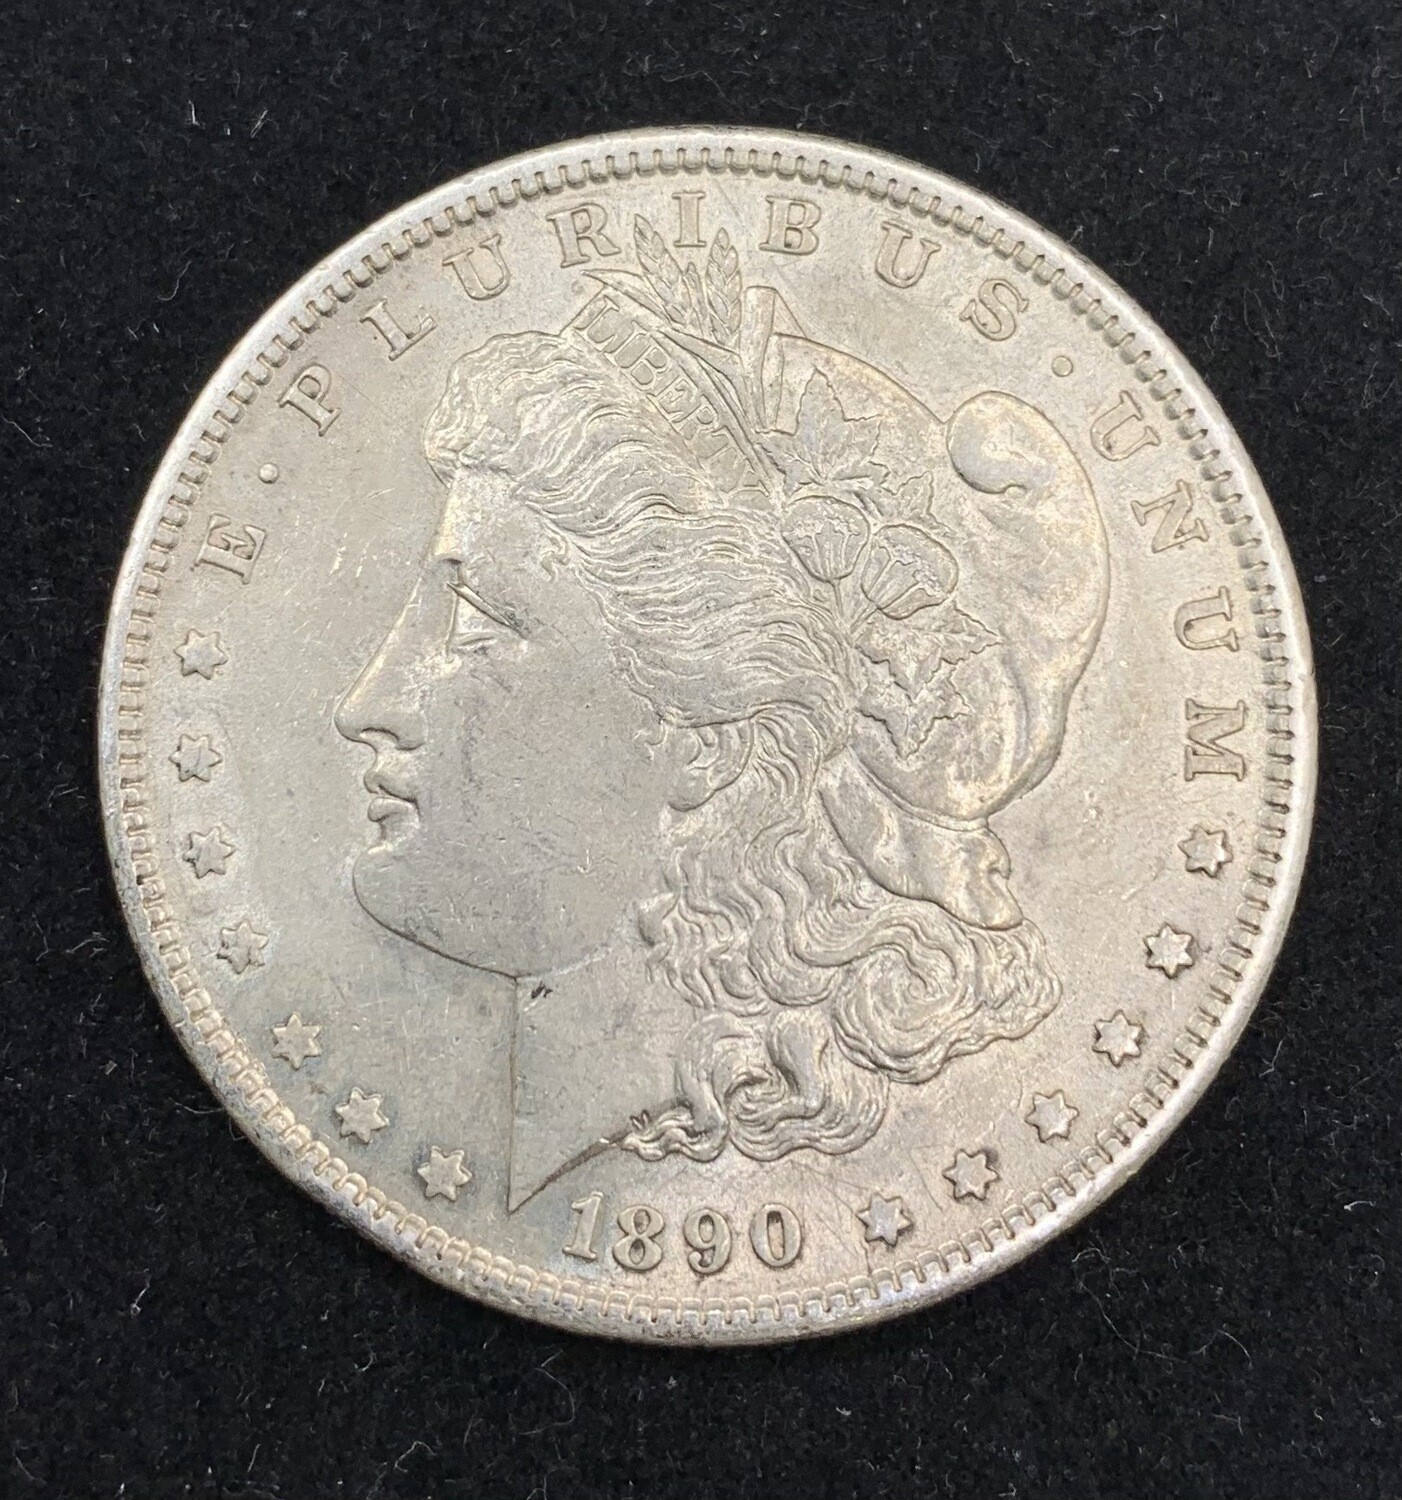 1890 Morgan Silver Dollar - San Francisco Mint